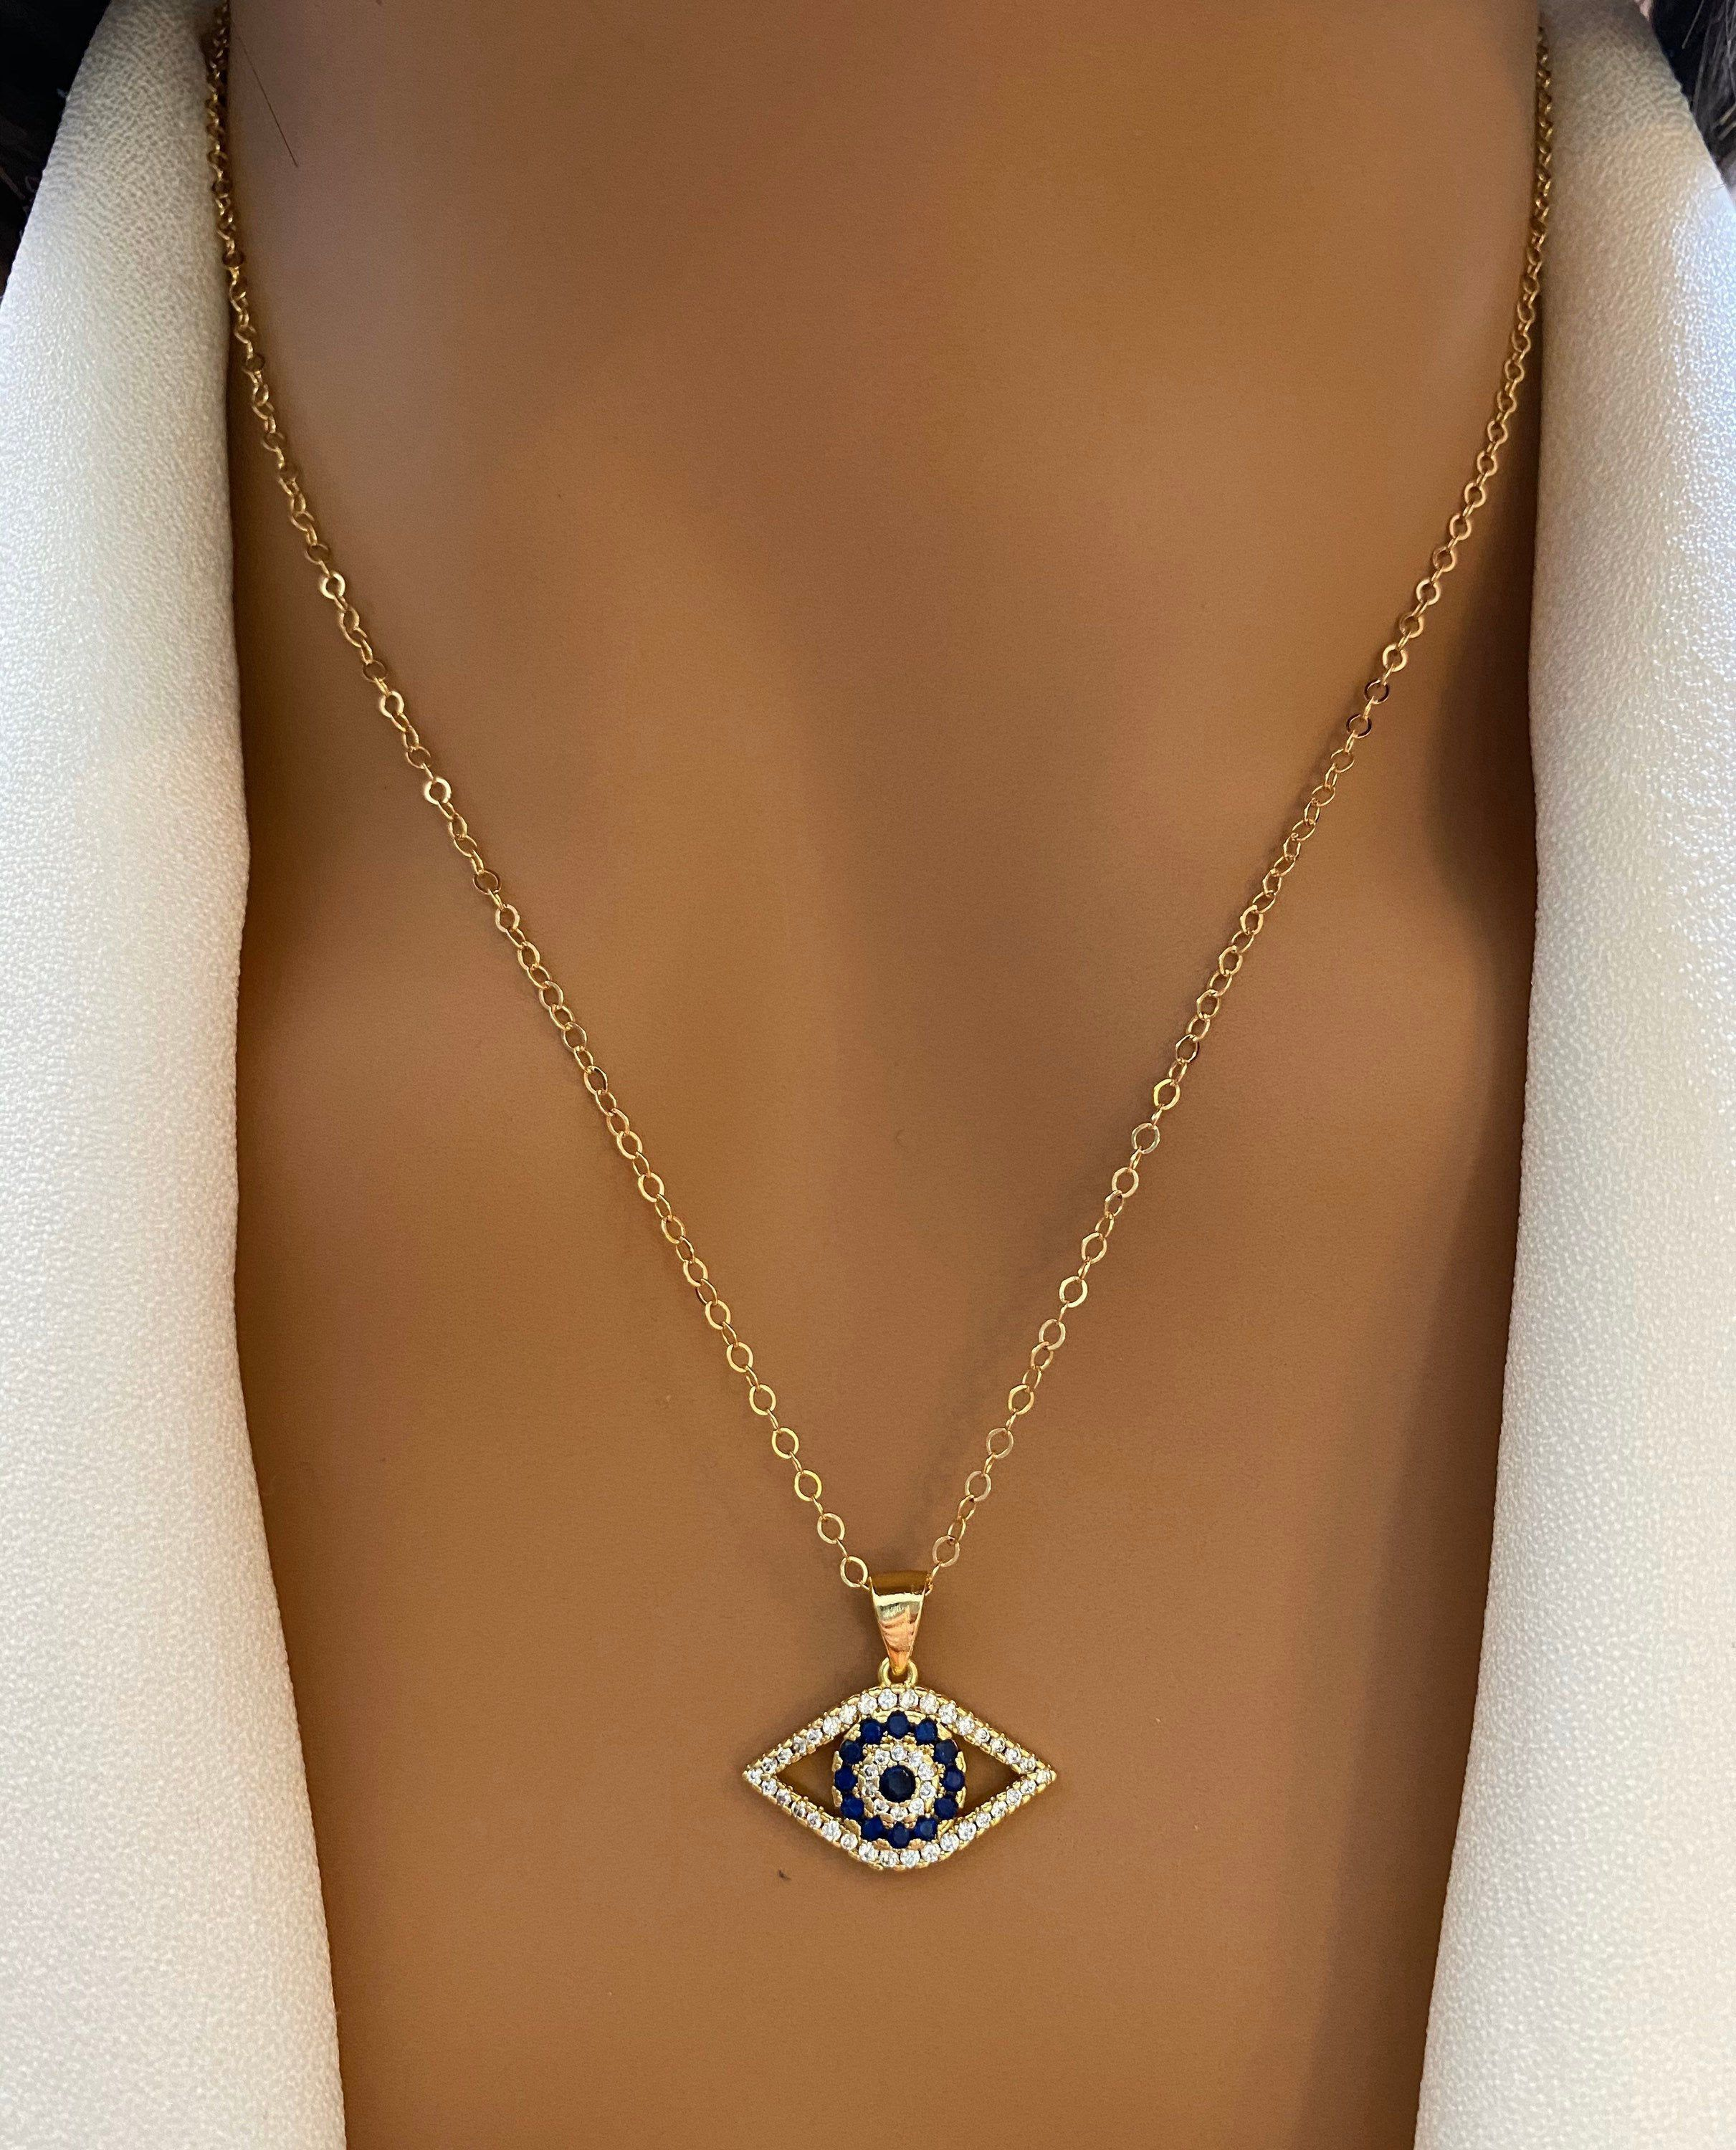 Gold Necklace,Evil Eye Necklace,Cz zirconia,Turquoise gemstones,Turquoise Necklace,Protection,Good Luck,Bridal Jewelry,Birthday,Women Gift